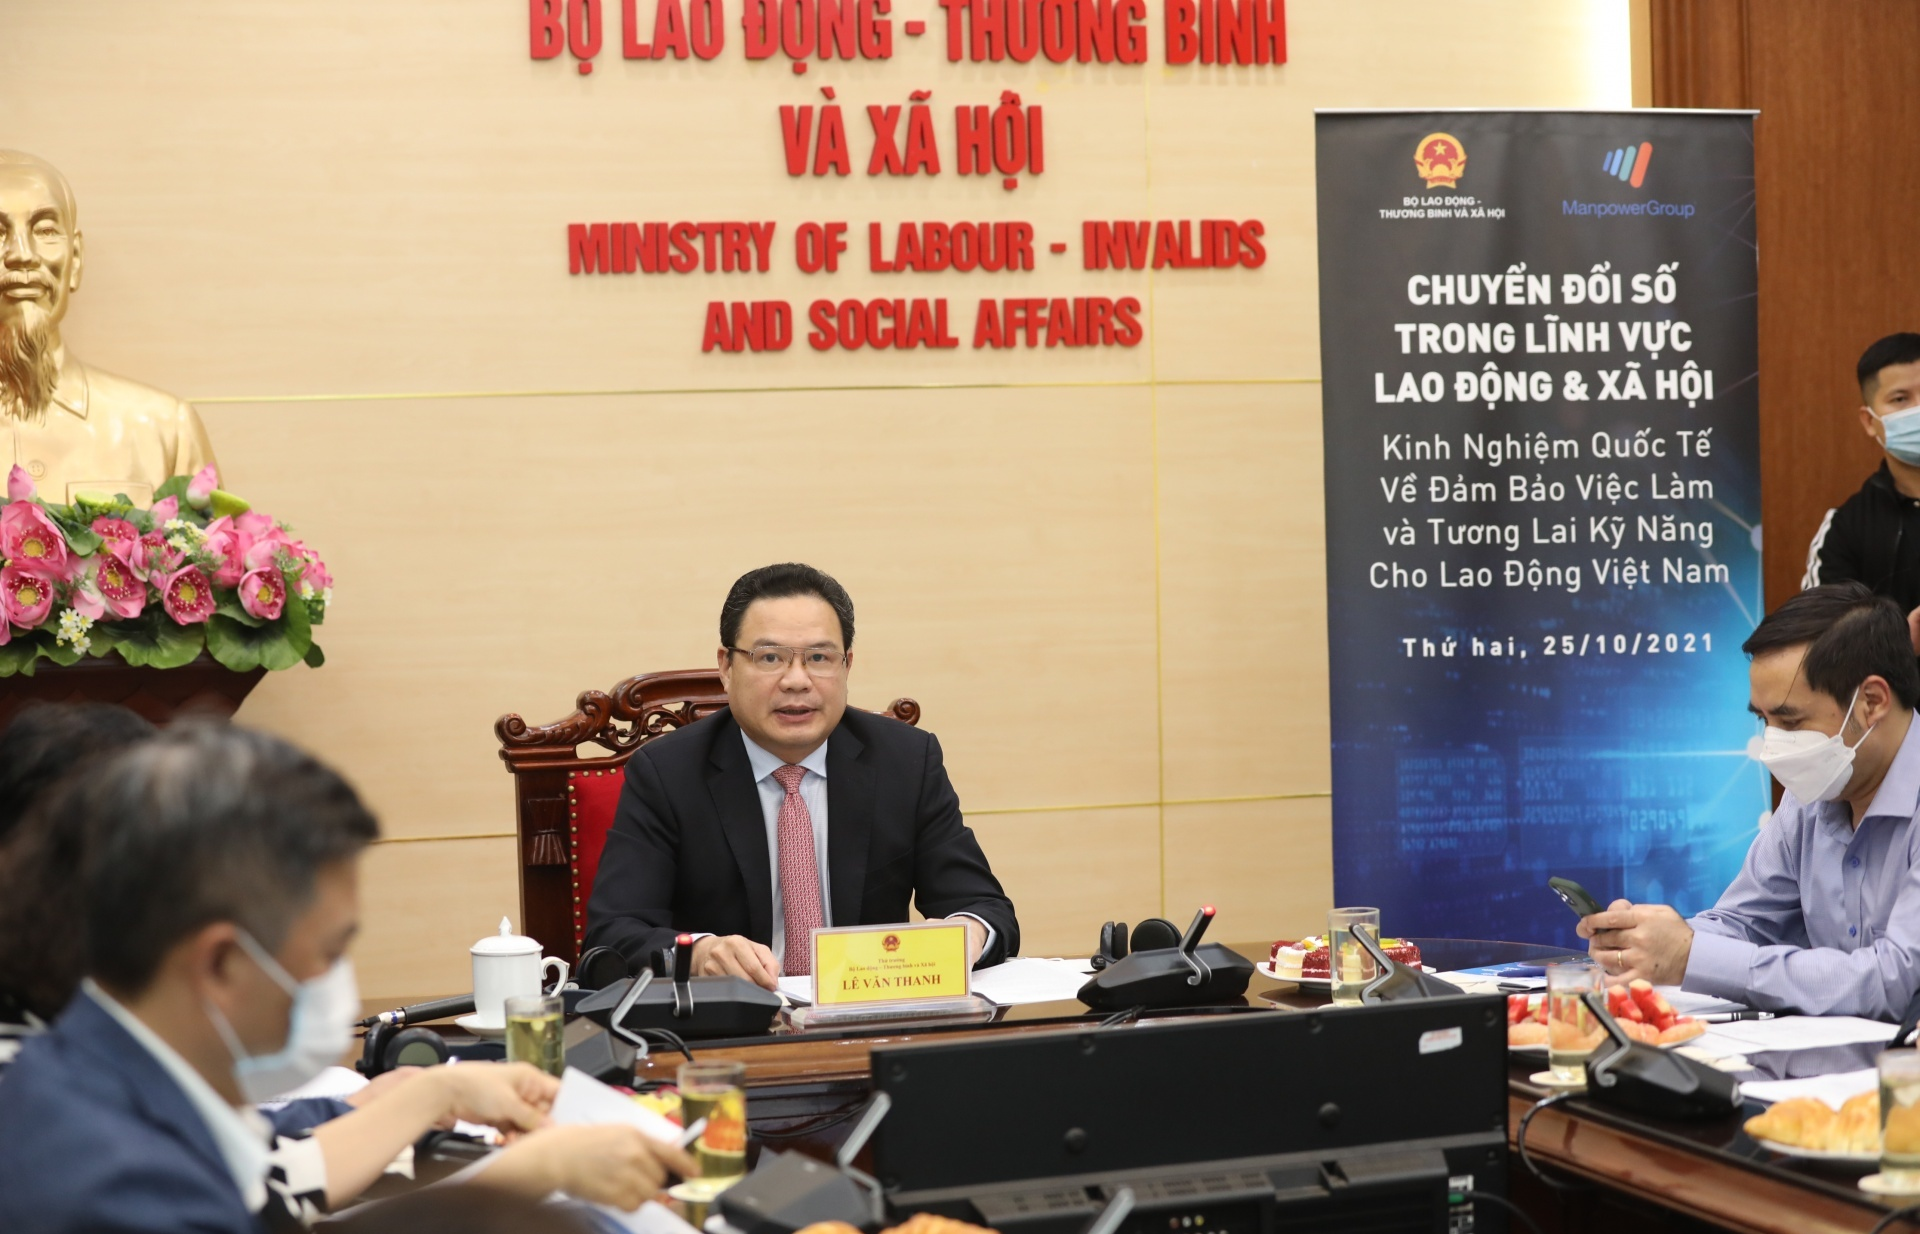 Employment security and the future of skills for Vietnamese workers in digital transformation